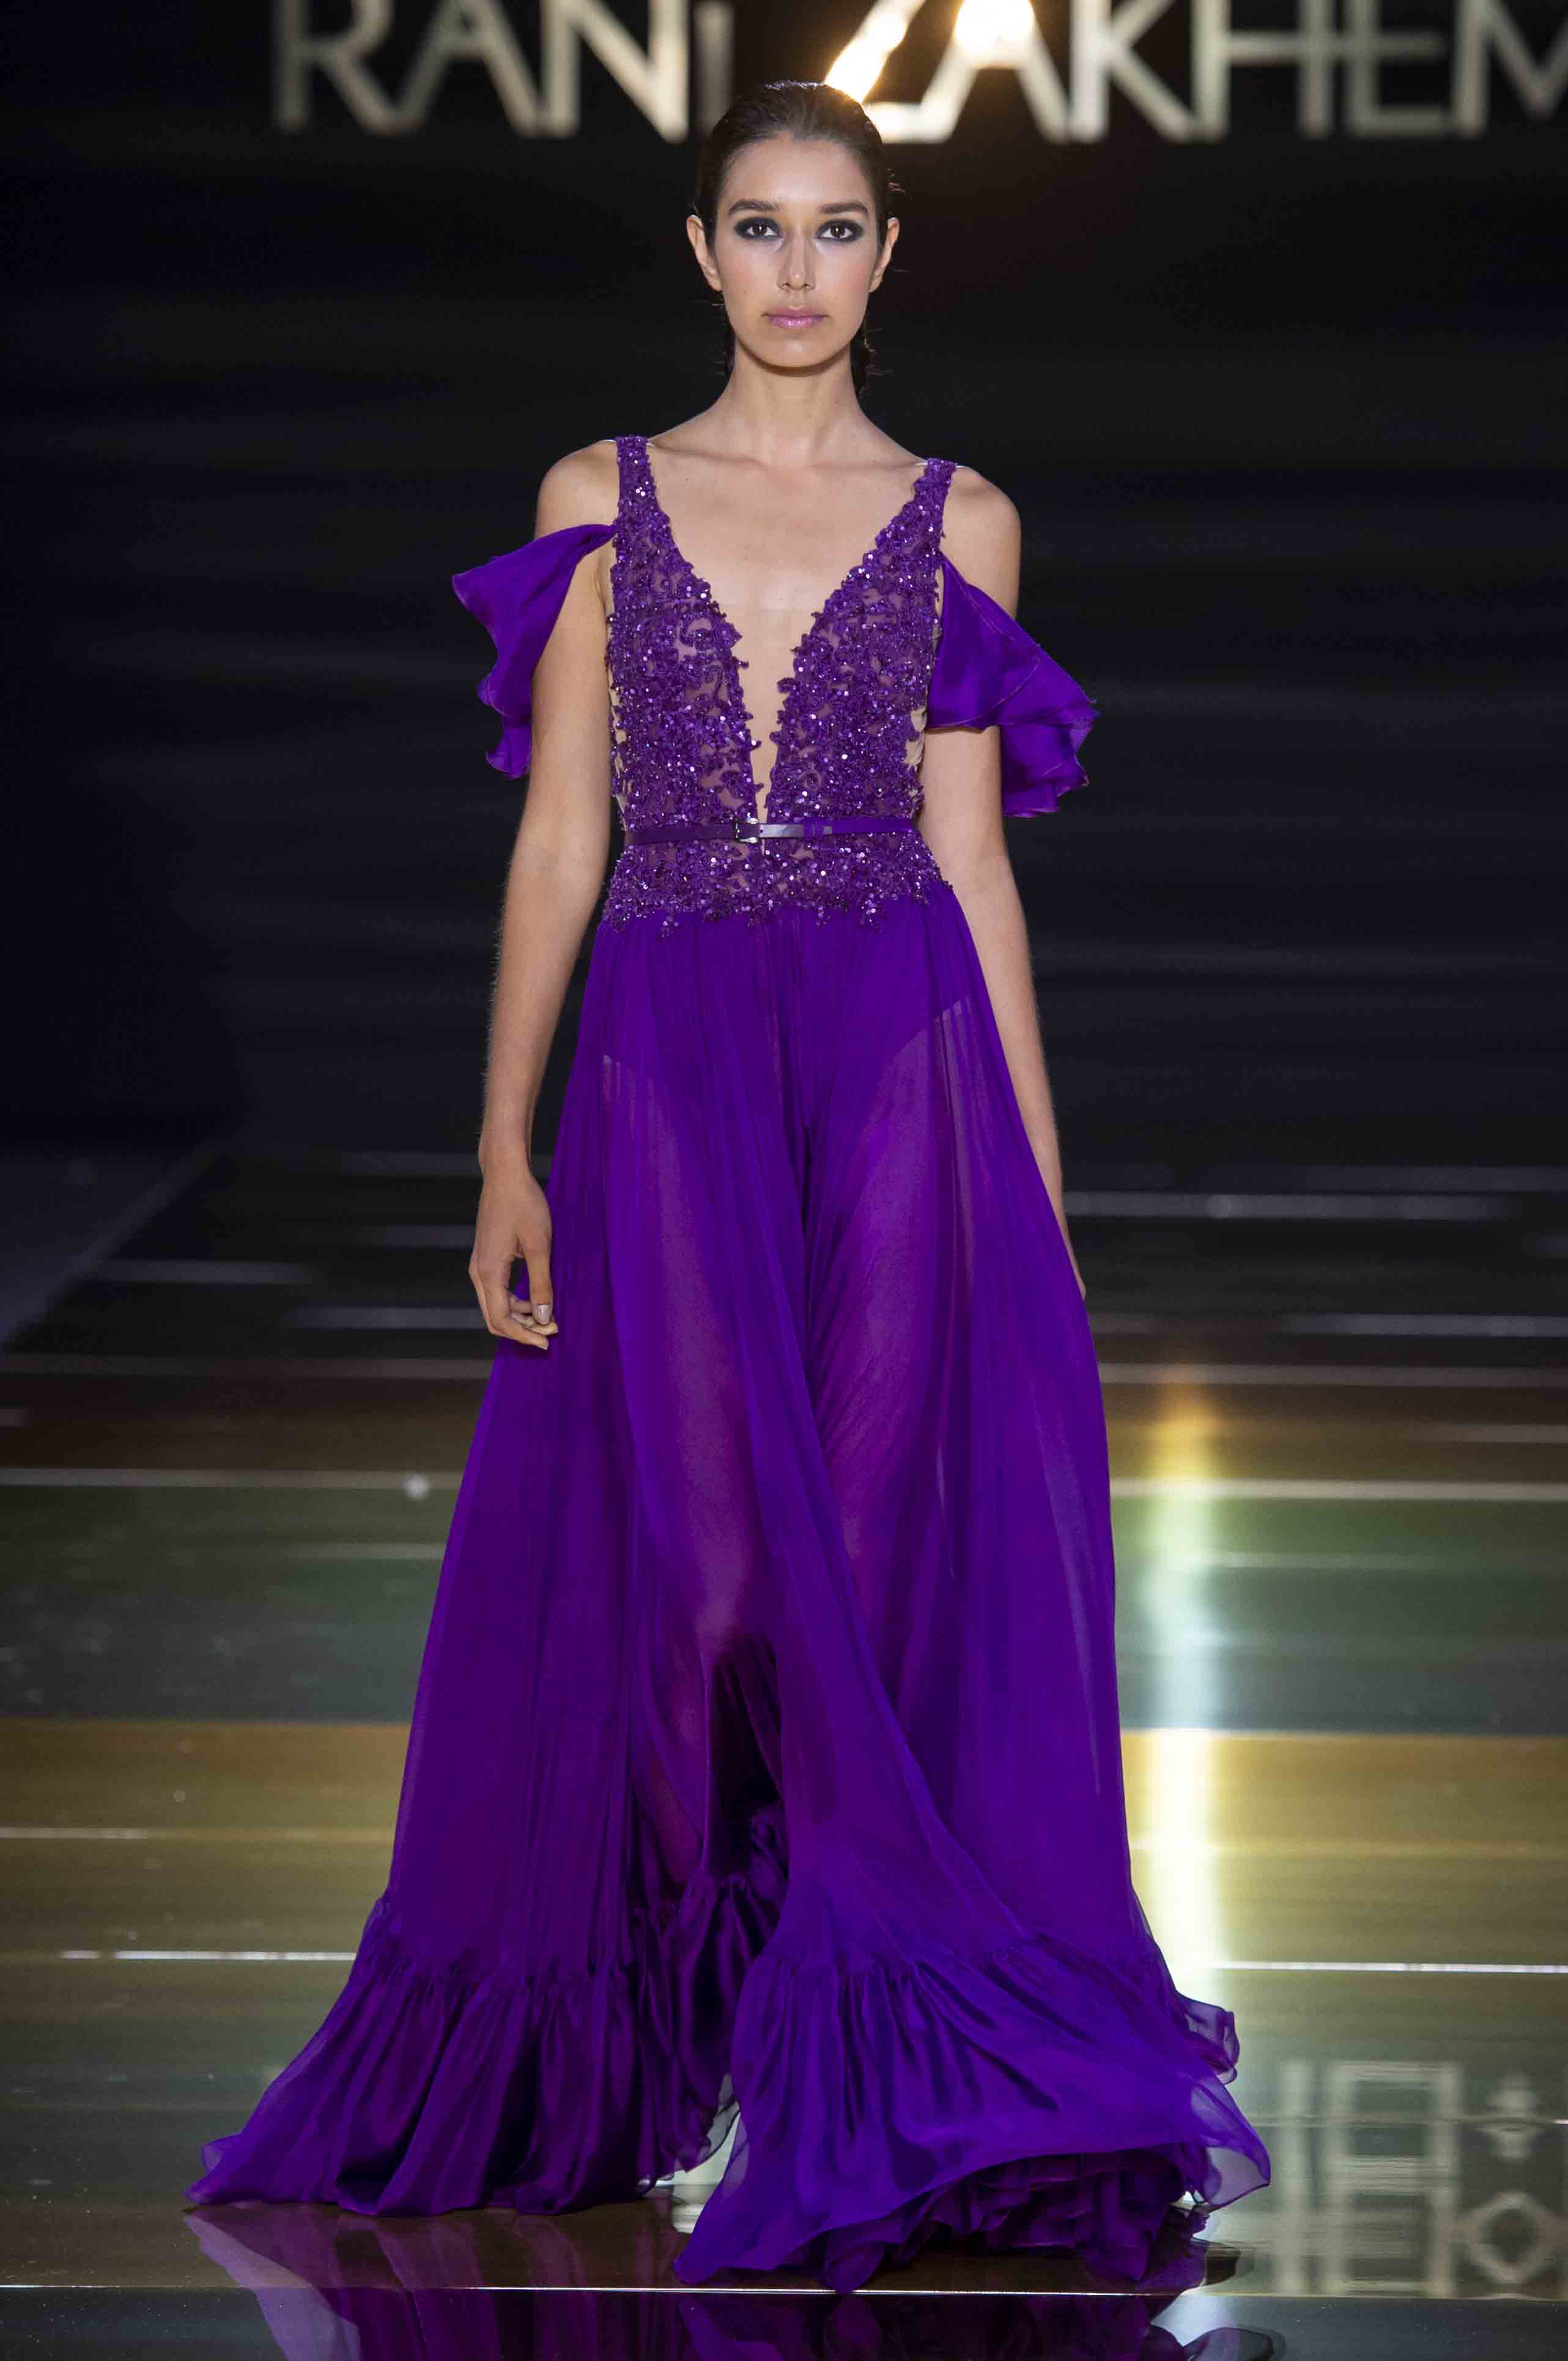 Rani zakhem couture collection automne hiver fall winter 2018 2019 pfw © imaxtree (18)